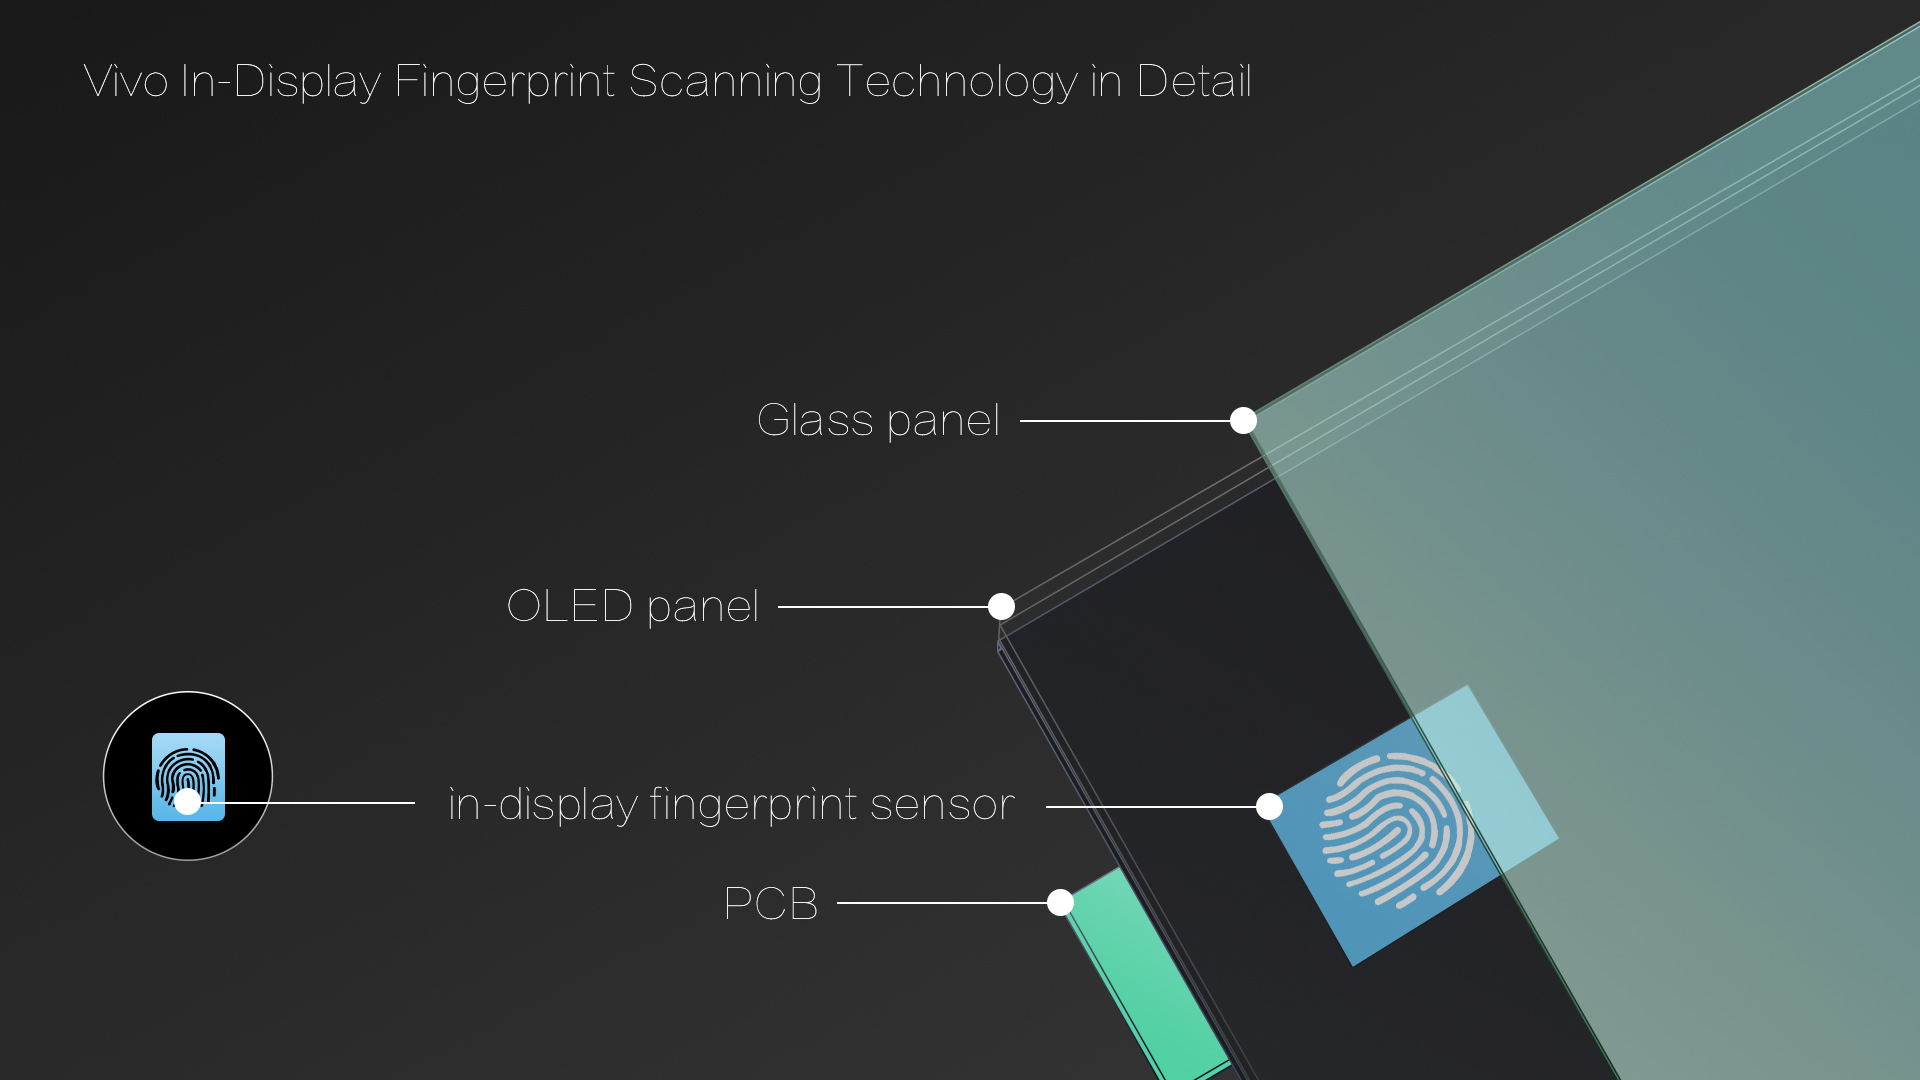 Synaptics to ship in-display fingerprint sensors with Vivo smartphones